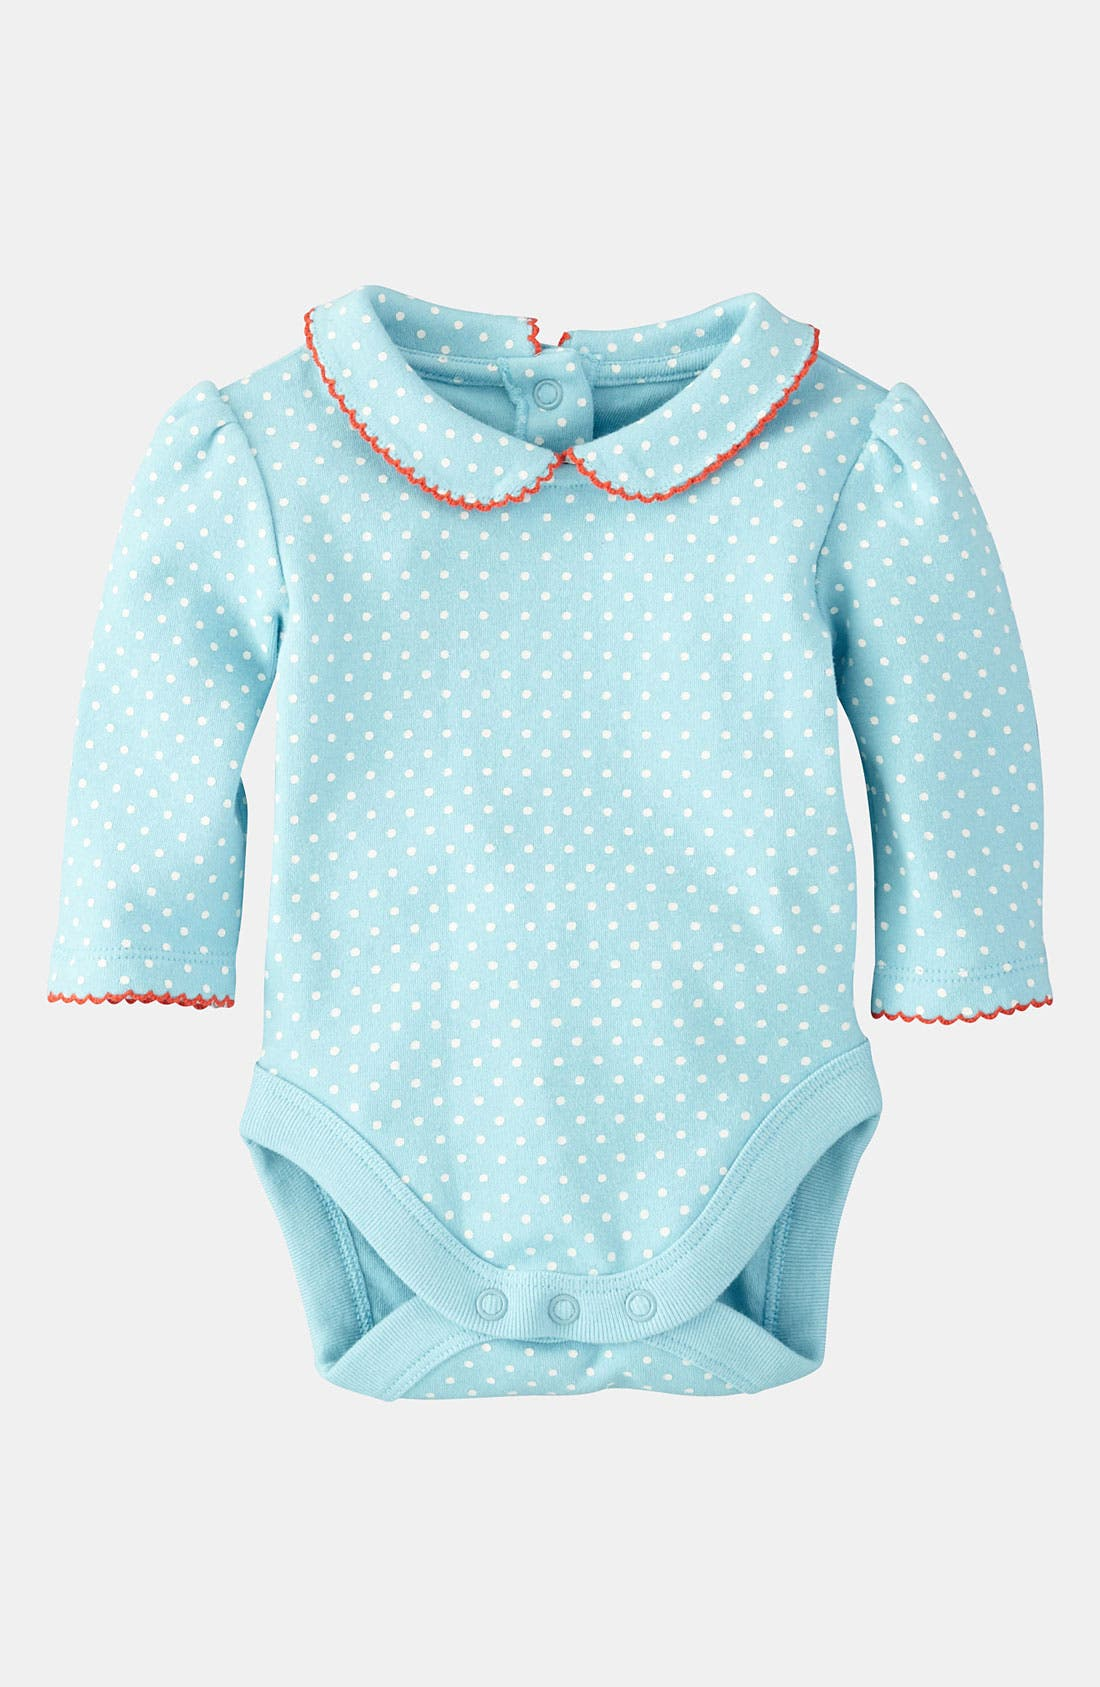 Alternate Image 1 Selected - Mini Boden 'Pretty' Collar Bodysuit (Infant)